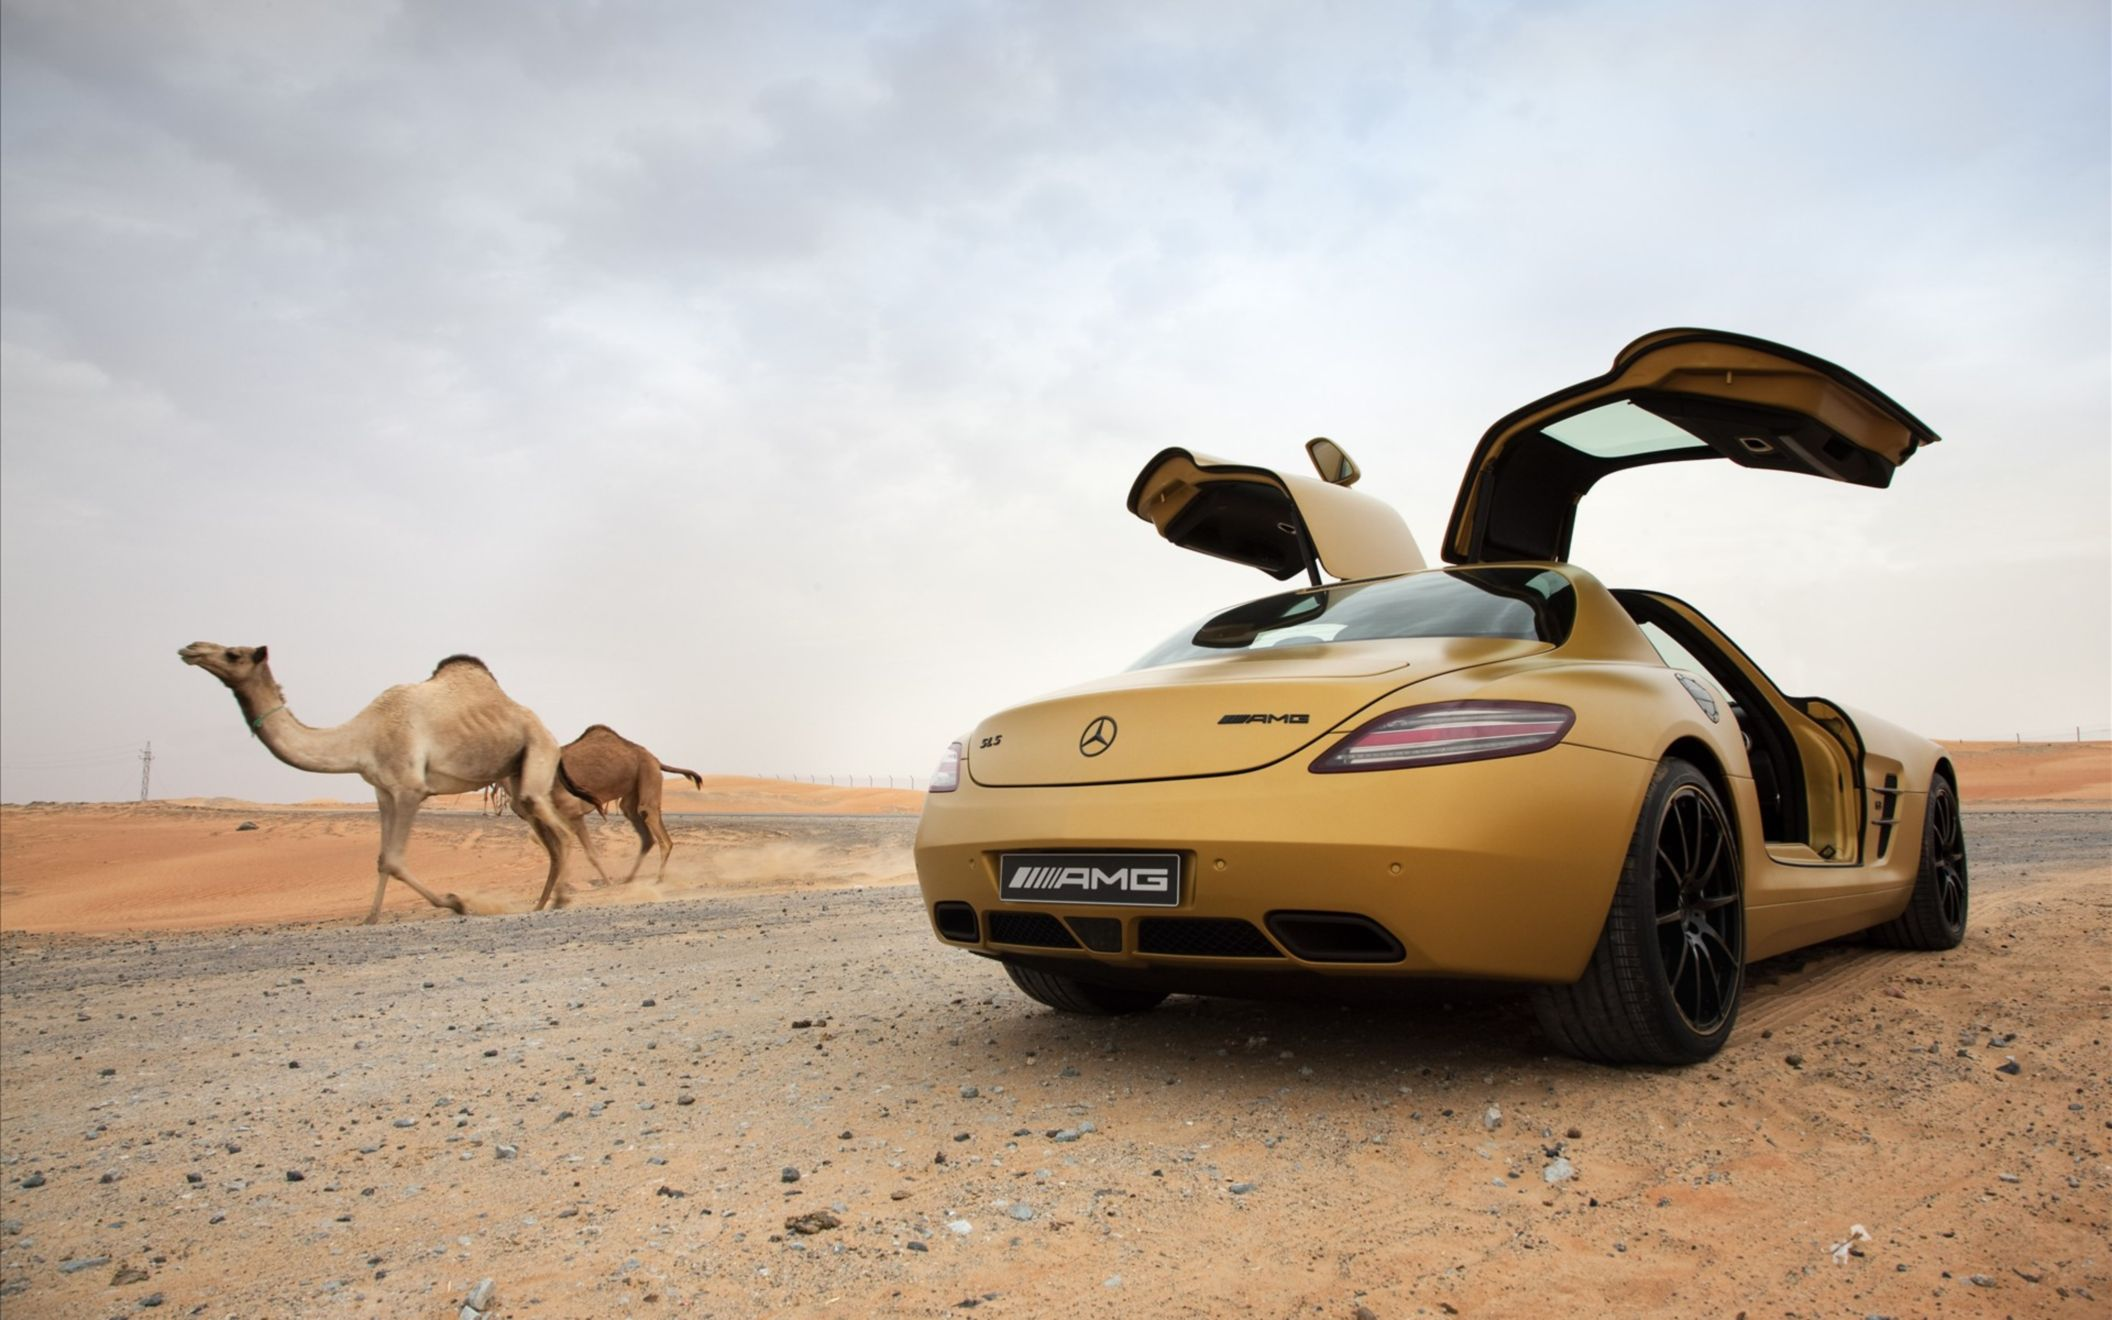 Download free HD 2010 Mercedes Benz Sls Amg Desert Gold 8 Wide Wallpaper, image